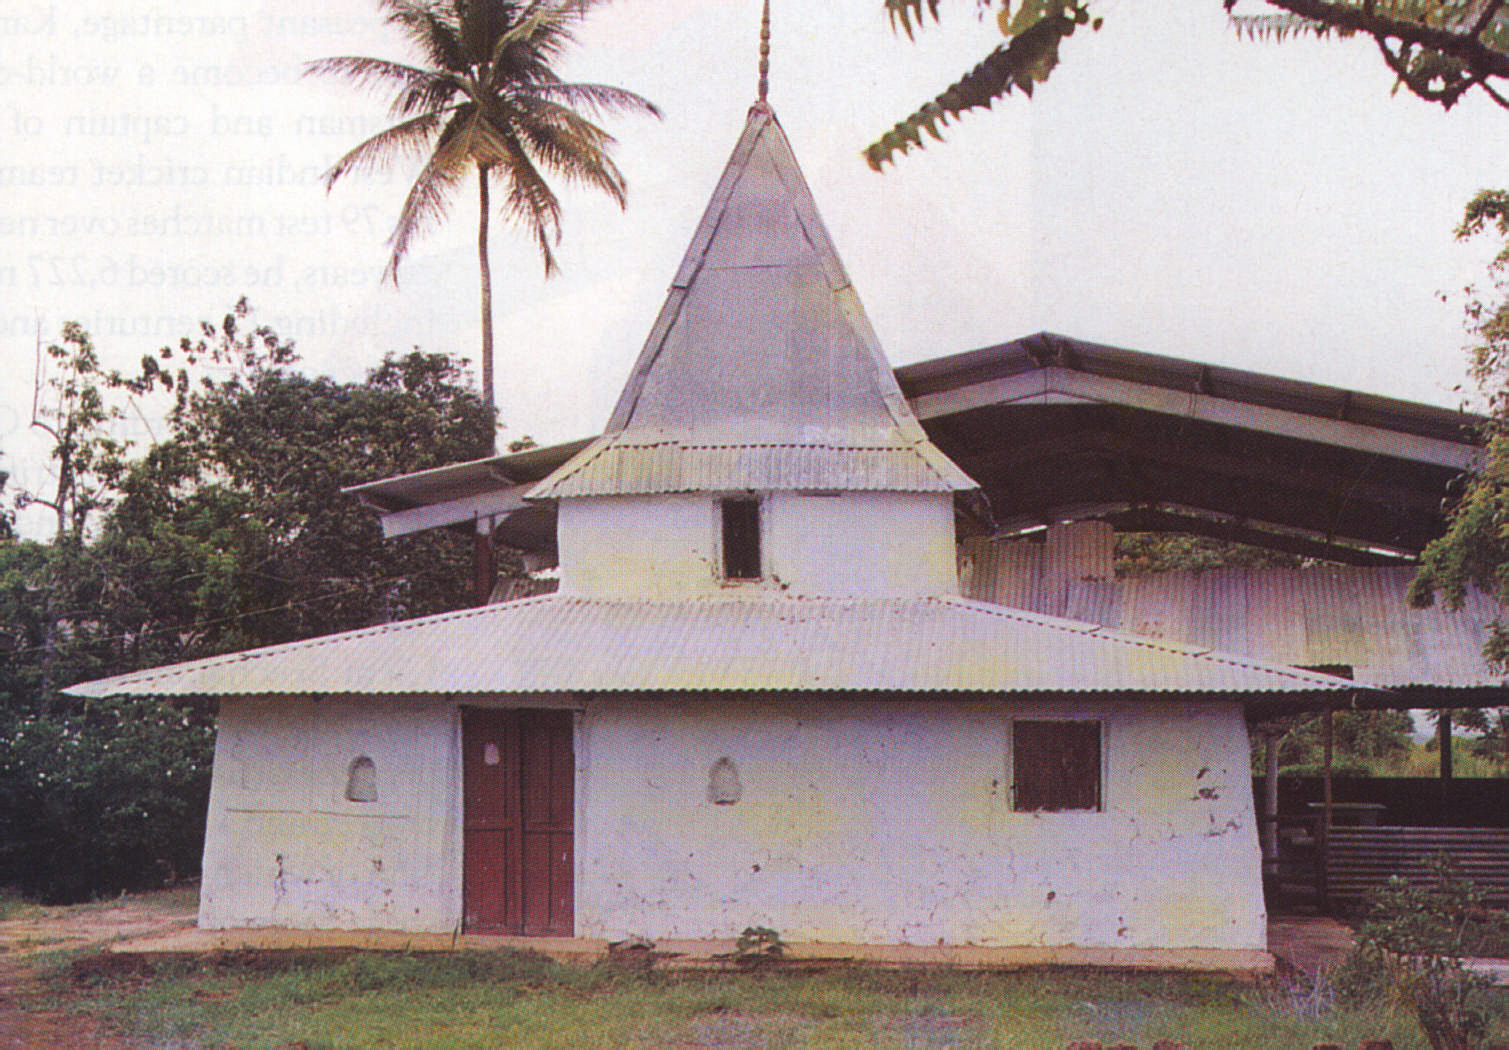 An early HIndu temple at Exchange Village, Trinidad: the original dirt walls and floor survive after more than a century. Photograph by Jai Parasram